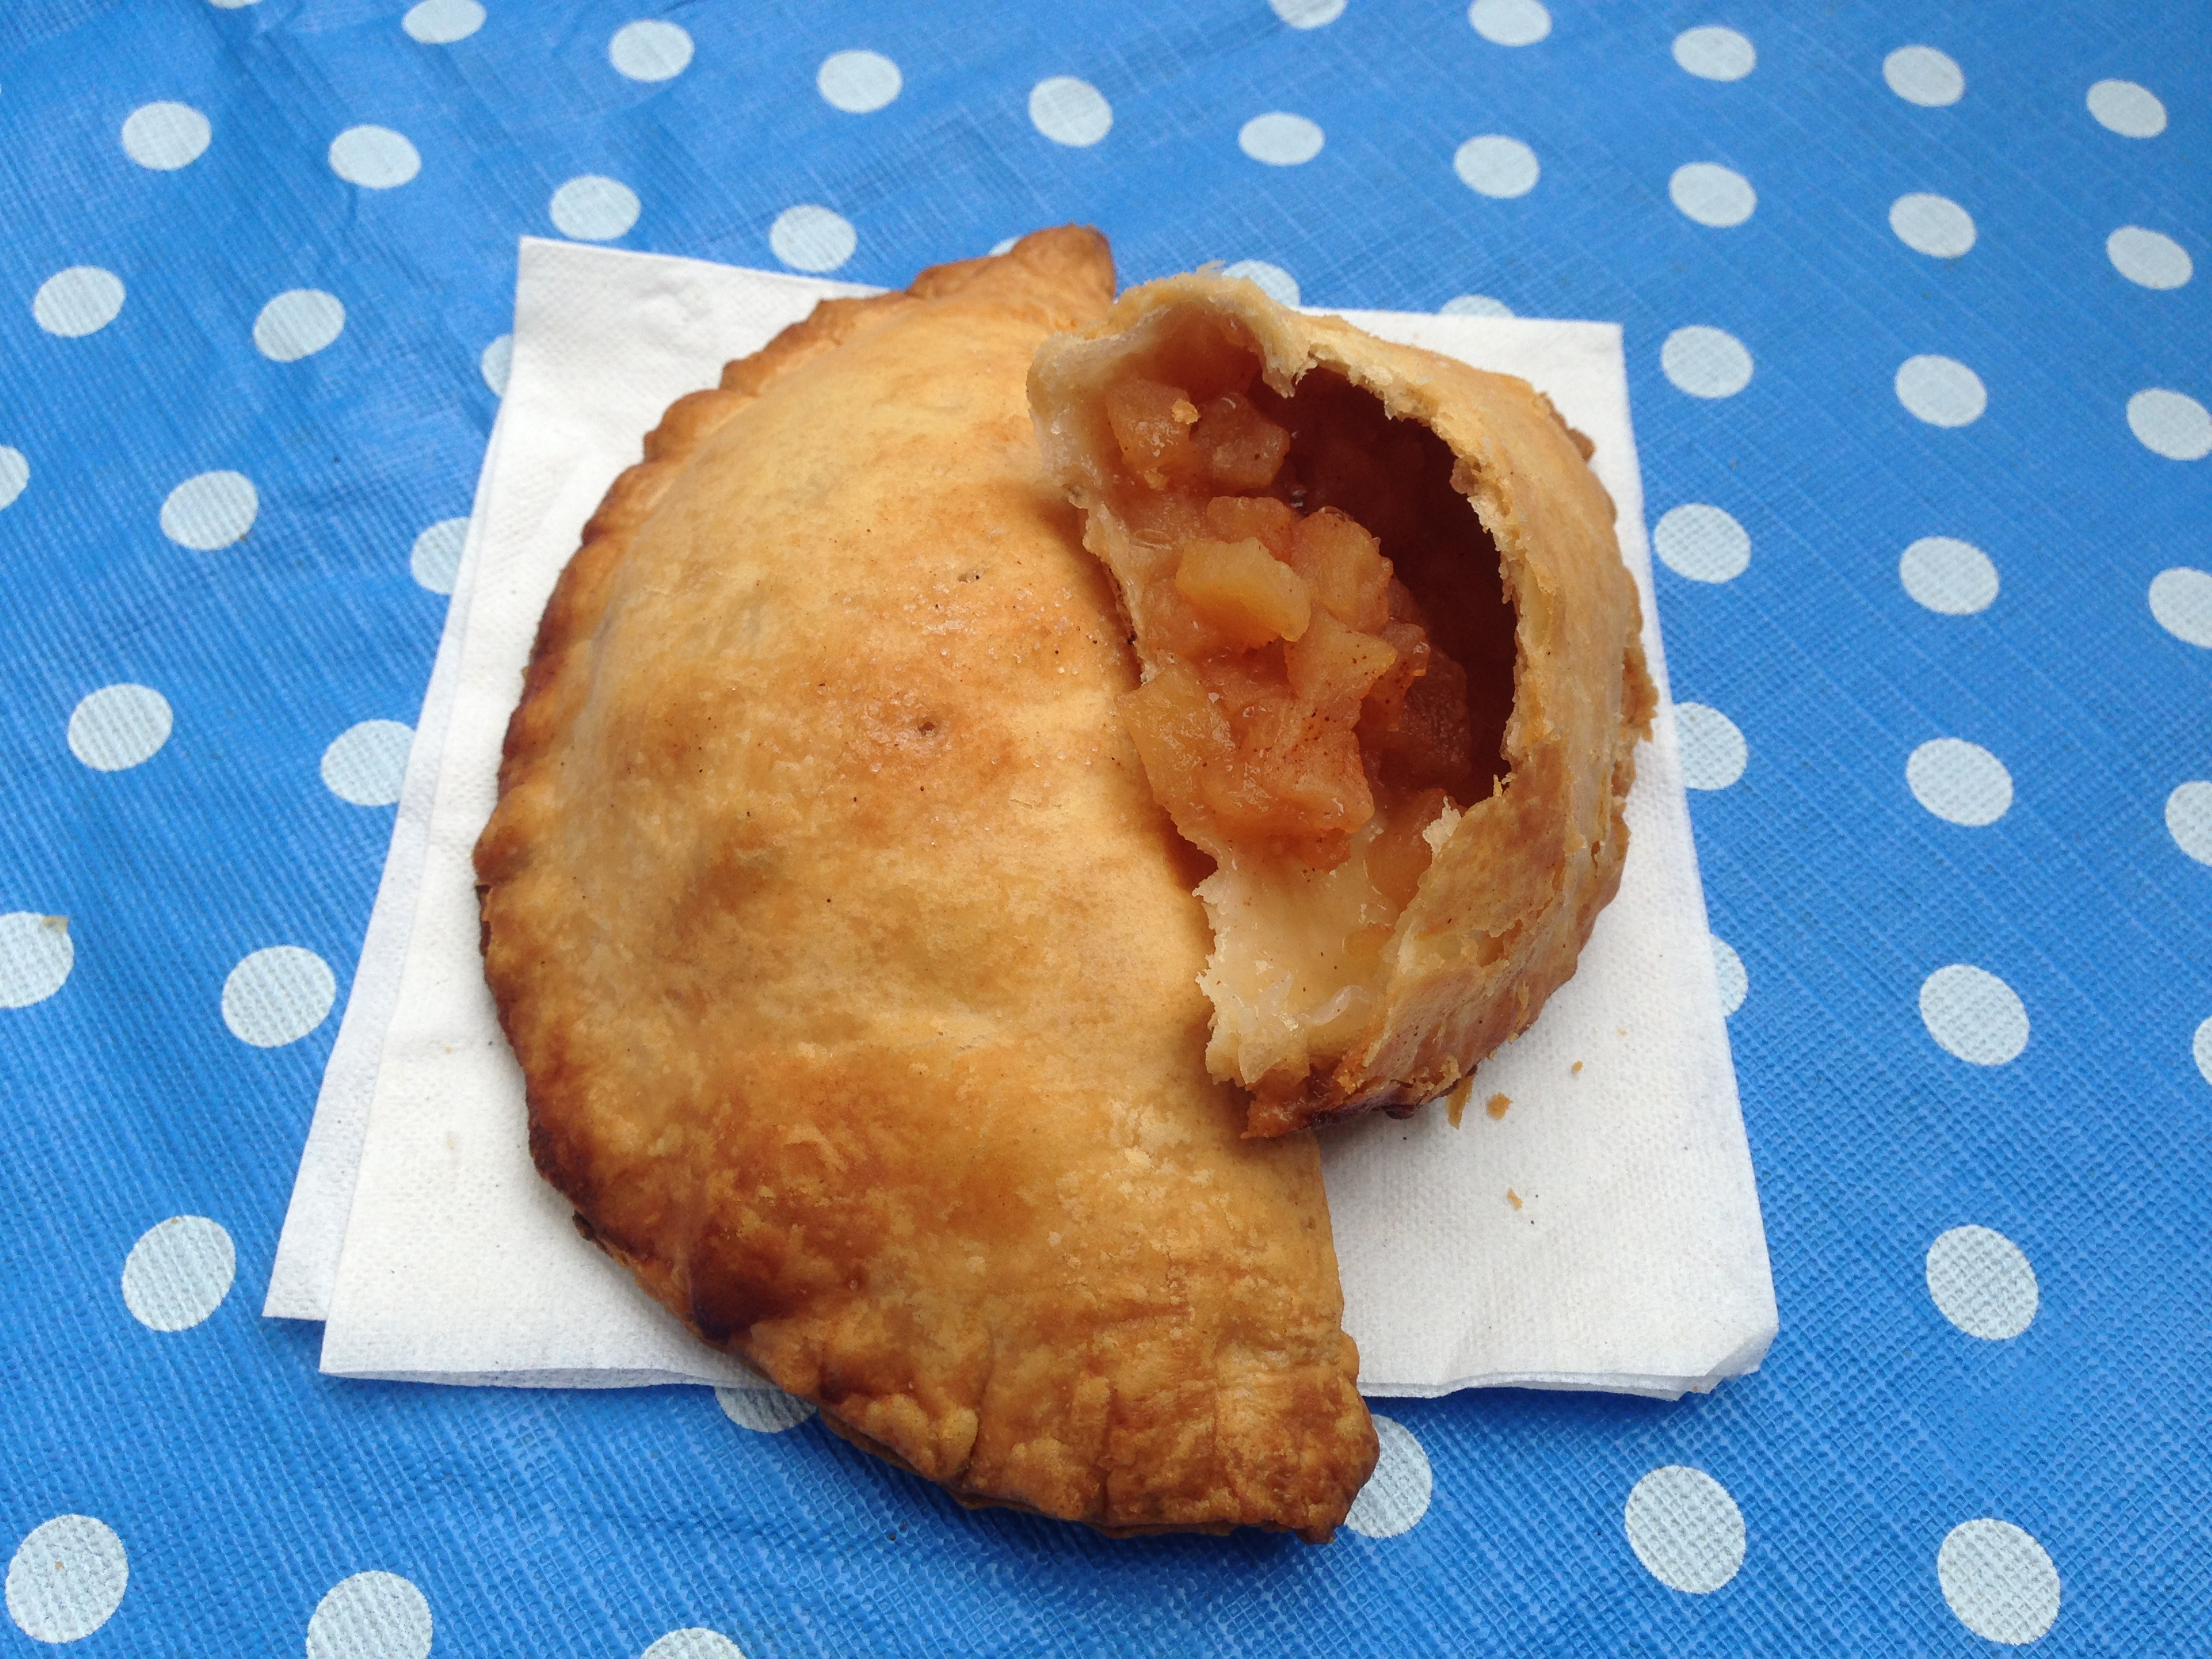 Delicious Apple Turnovers at Allen's Orchard